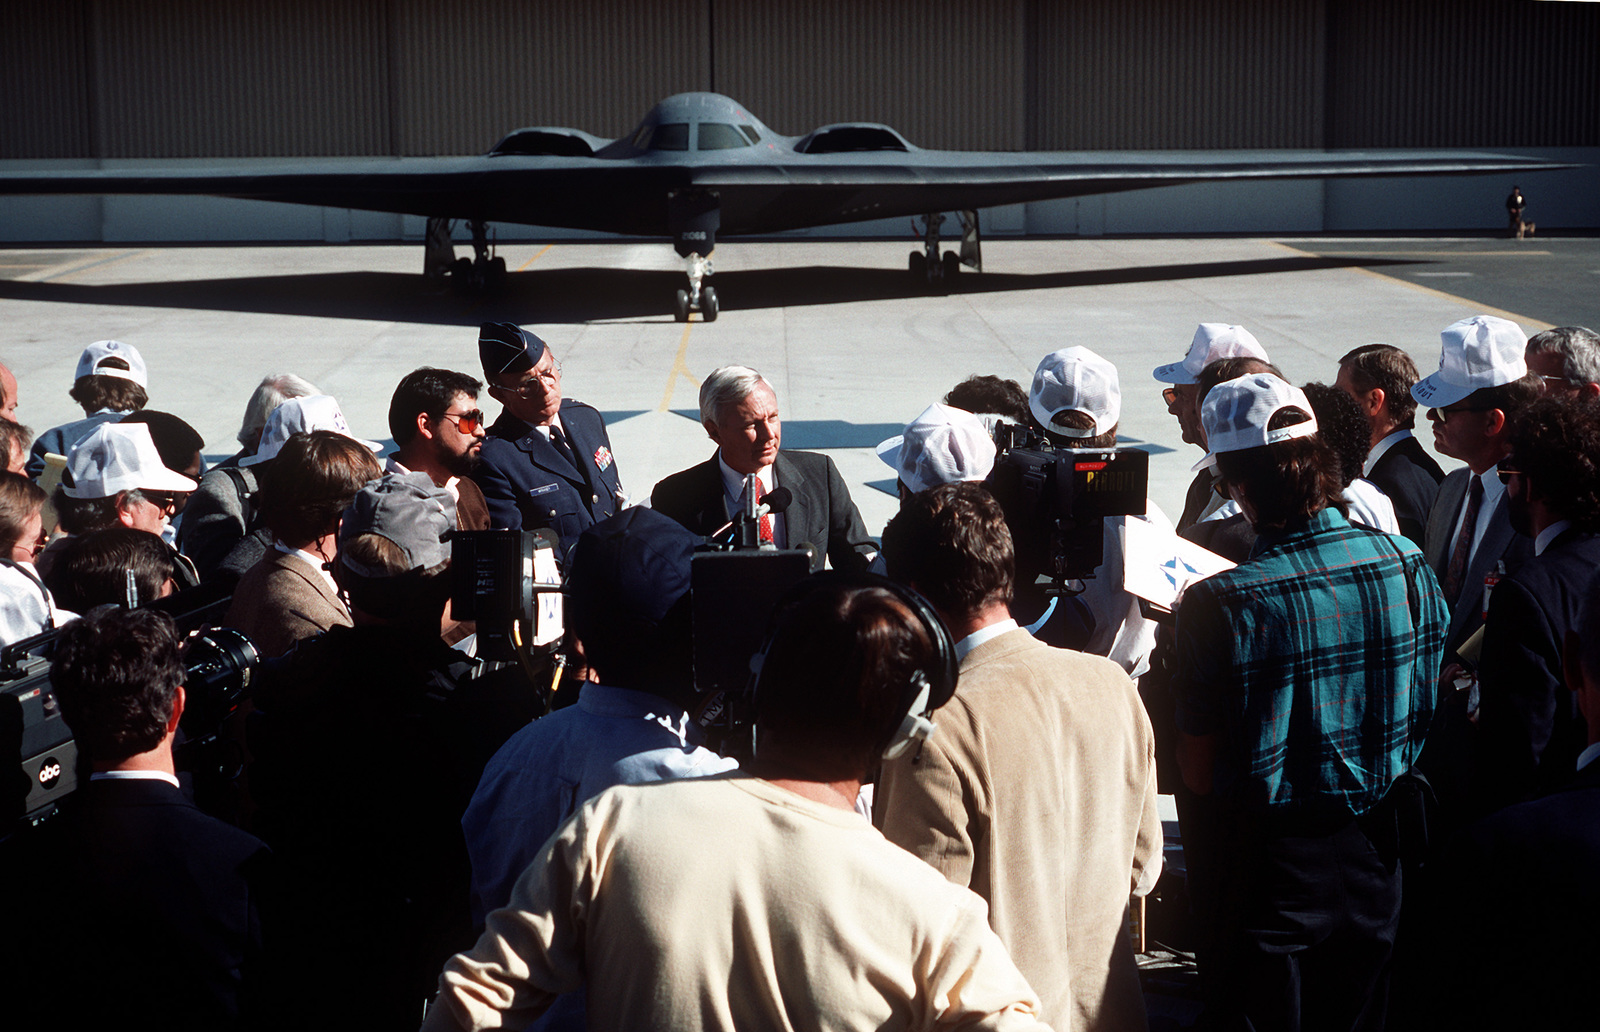 Accompanied by Air Force Public Affairs Director Brigadier General Michael P. McRaney, Secretary of the Air Force Edward C. Aldridge Jr., speaks to journalists at Air Force Plant 42 during the rollout ceremony for the advanced technology bomber